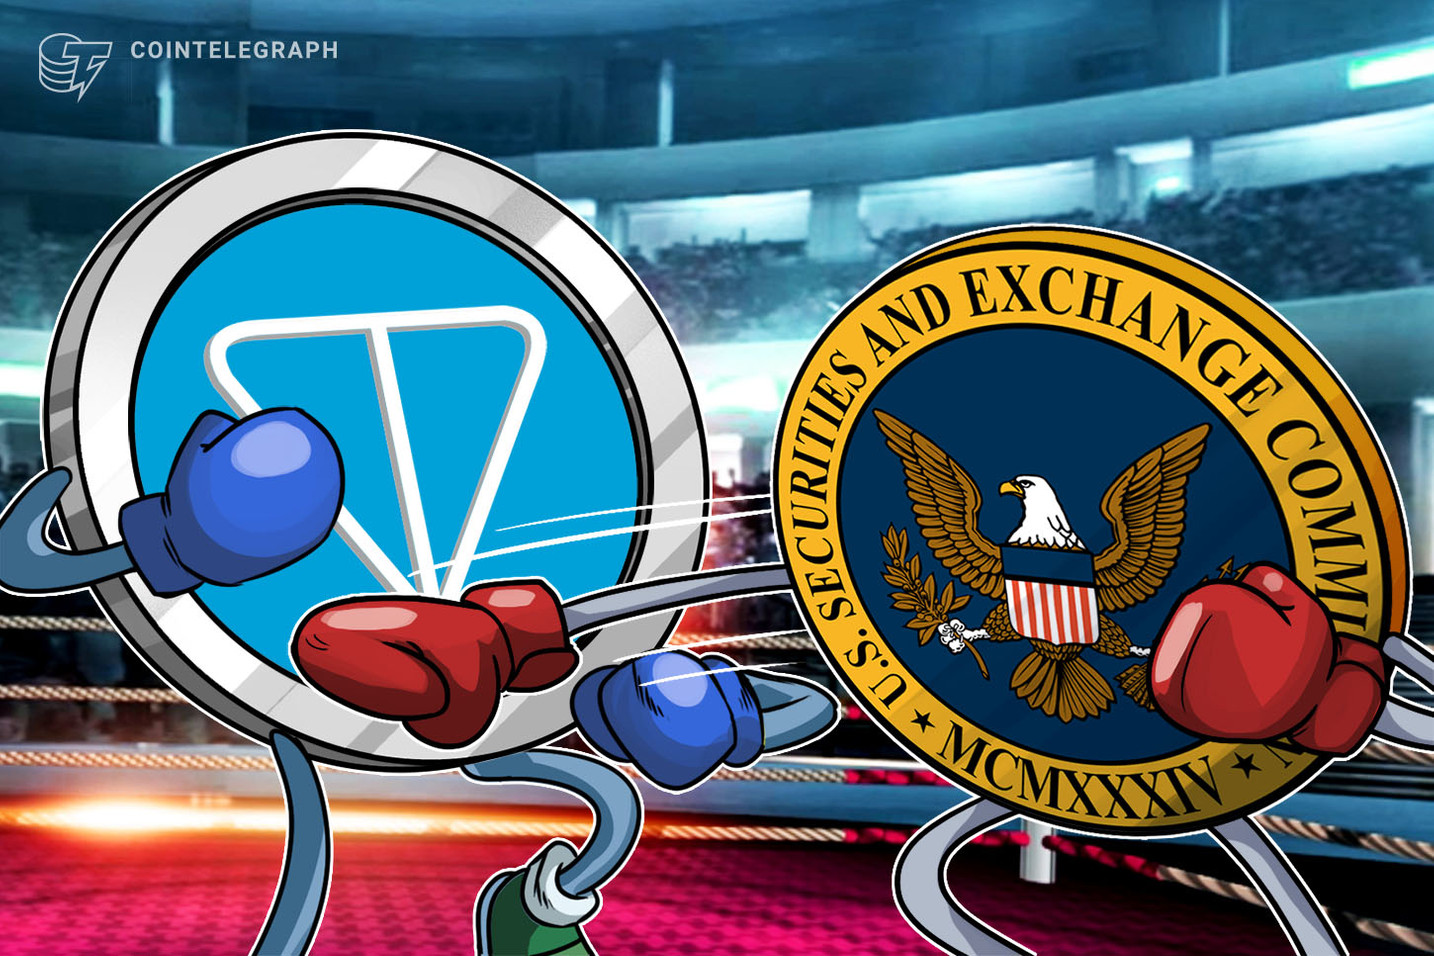 SEC Requests UK's Intervention to Force Telegram's Former Advisor to Testify